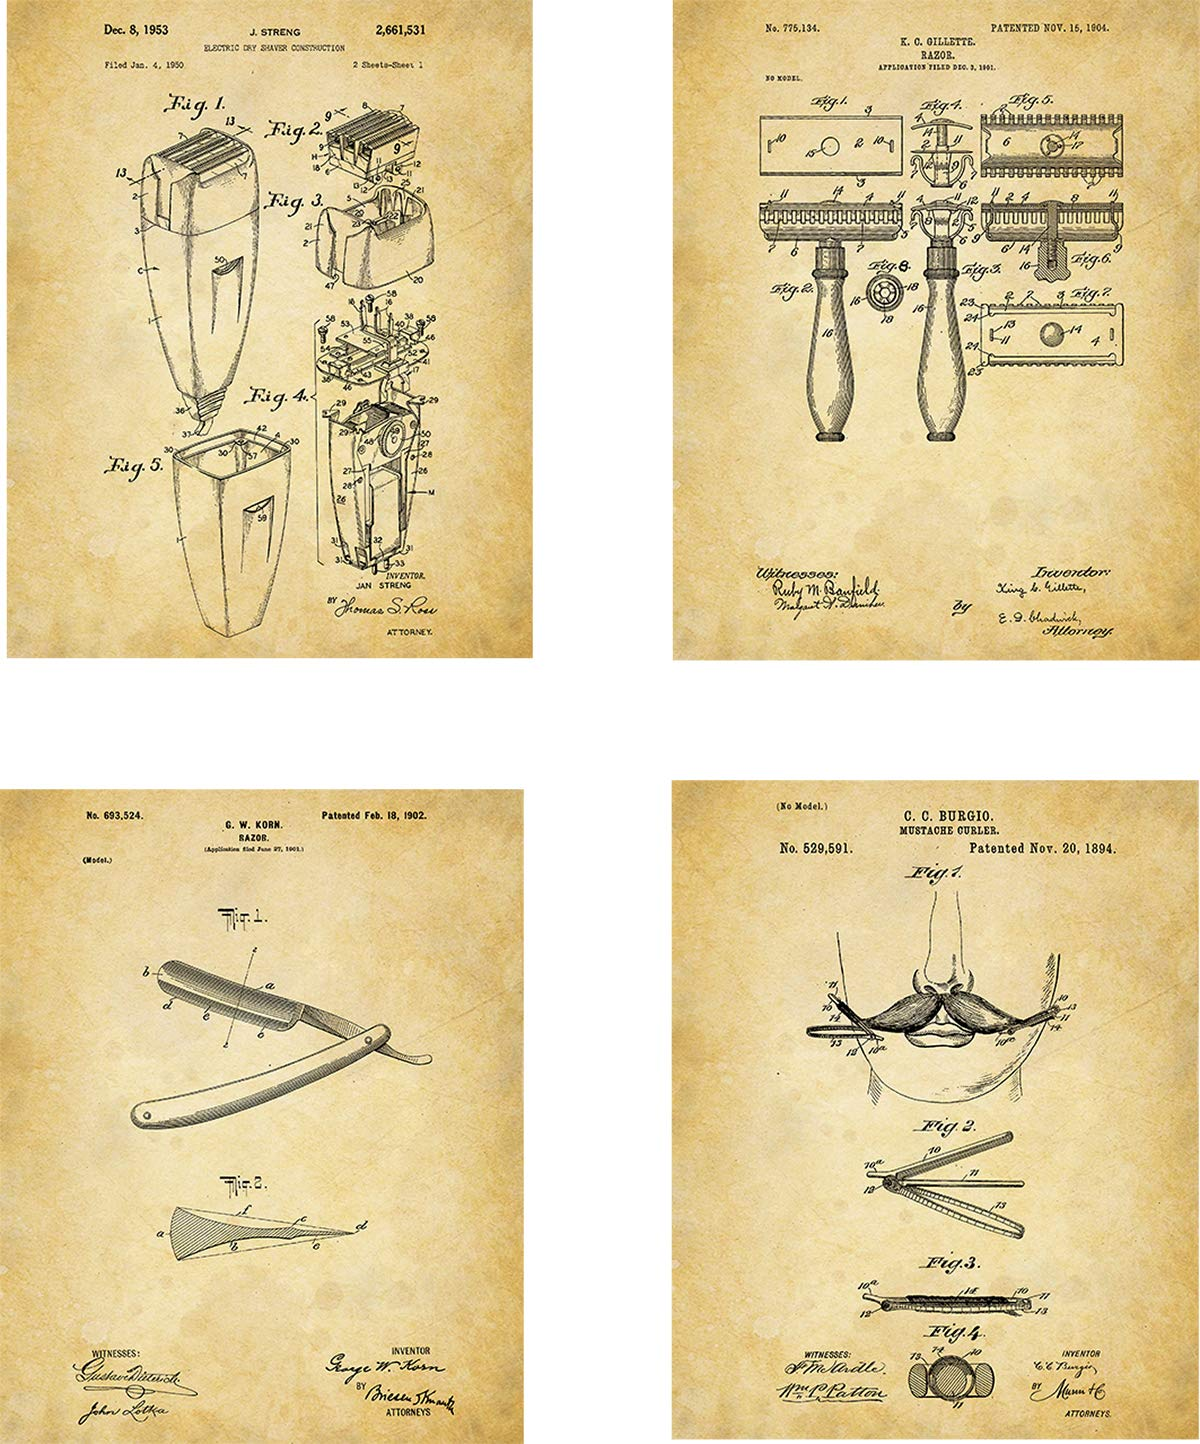 Men's Toiletries Patent Wall Art Prints - set of Four (8x10) Unframed - wall art decor for mens grooming needs